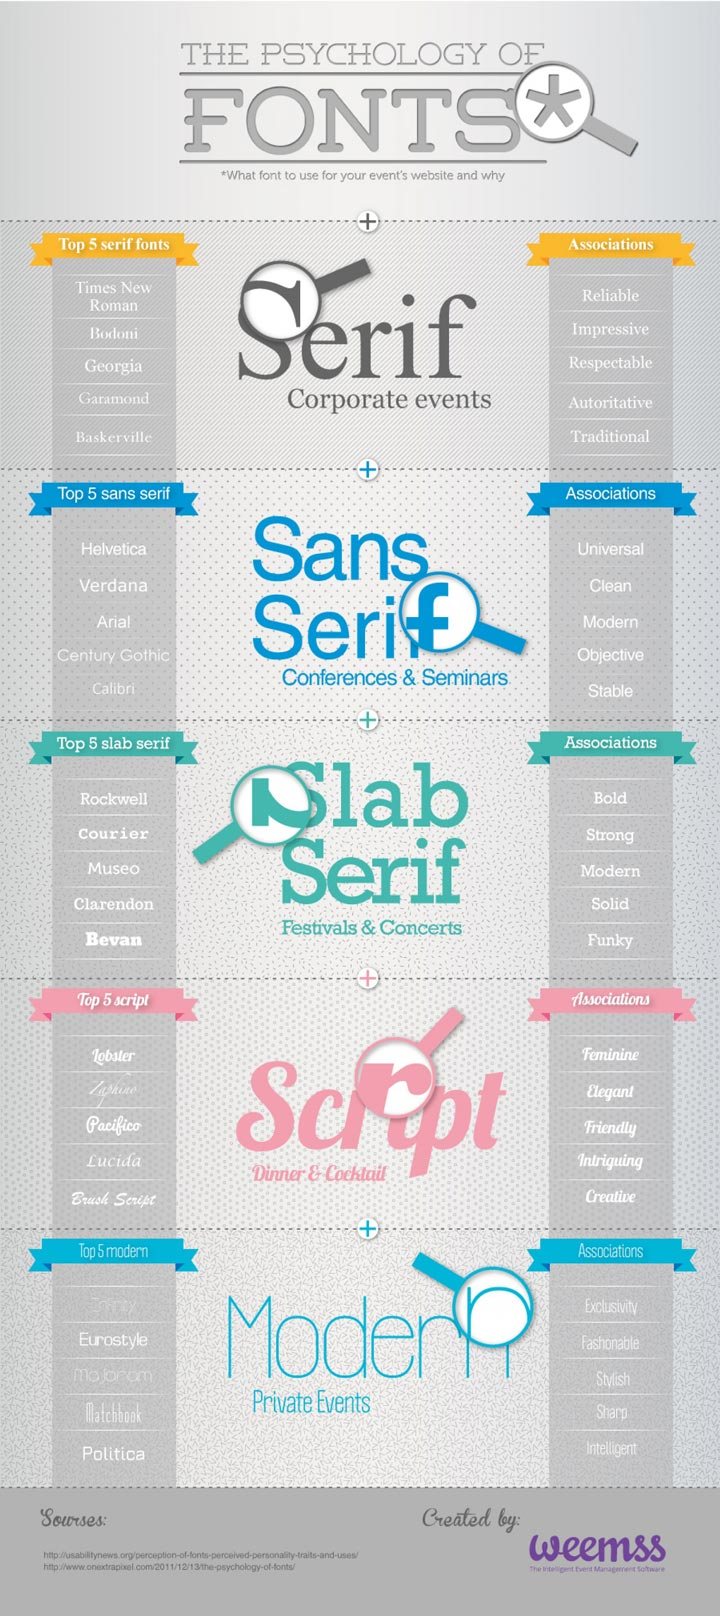 The Psychology of Fonts infographic